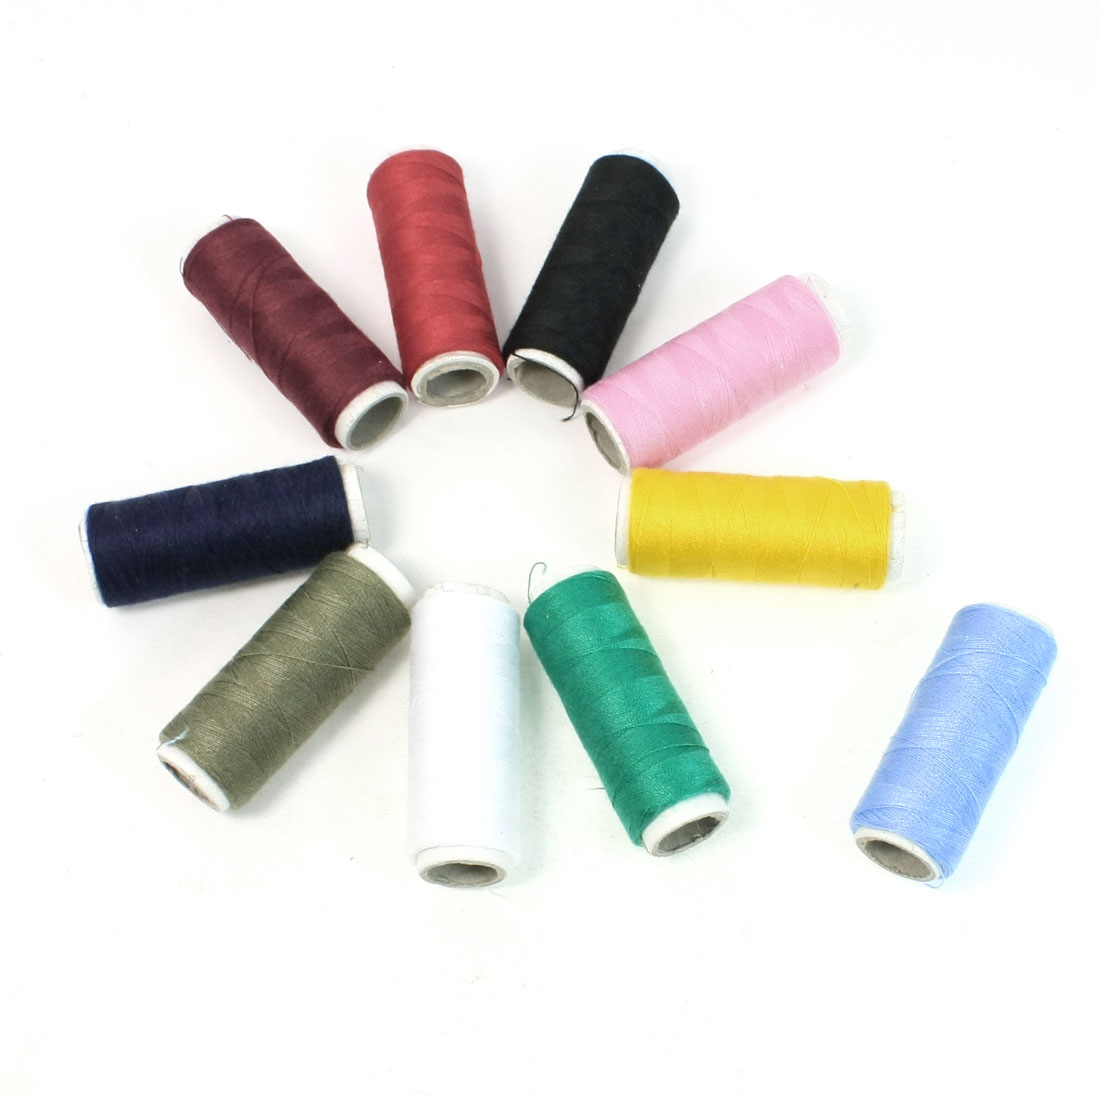 Seamstress Tailor Hand Embroidery Sewing Quilting Colorful Thread Spools 10 Pcs